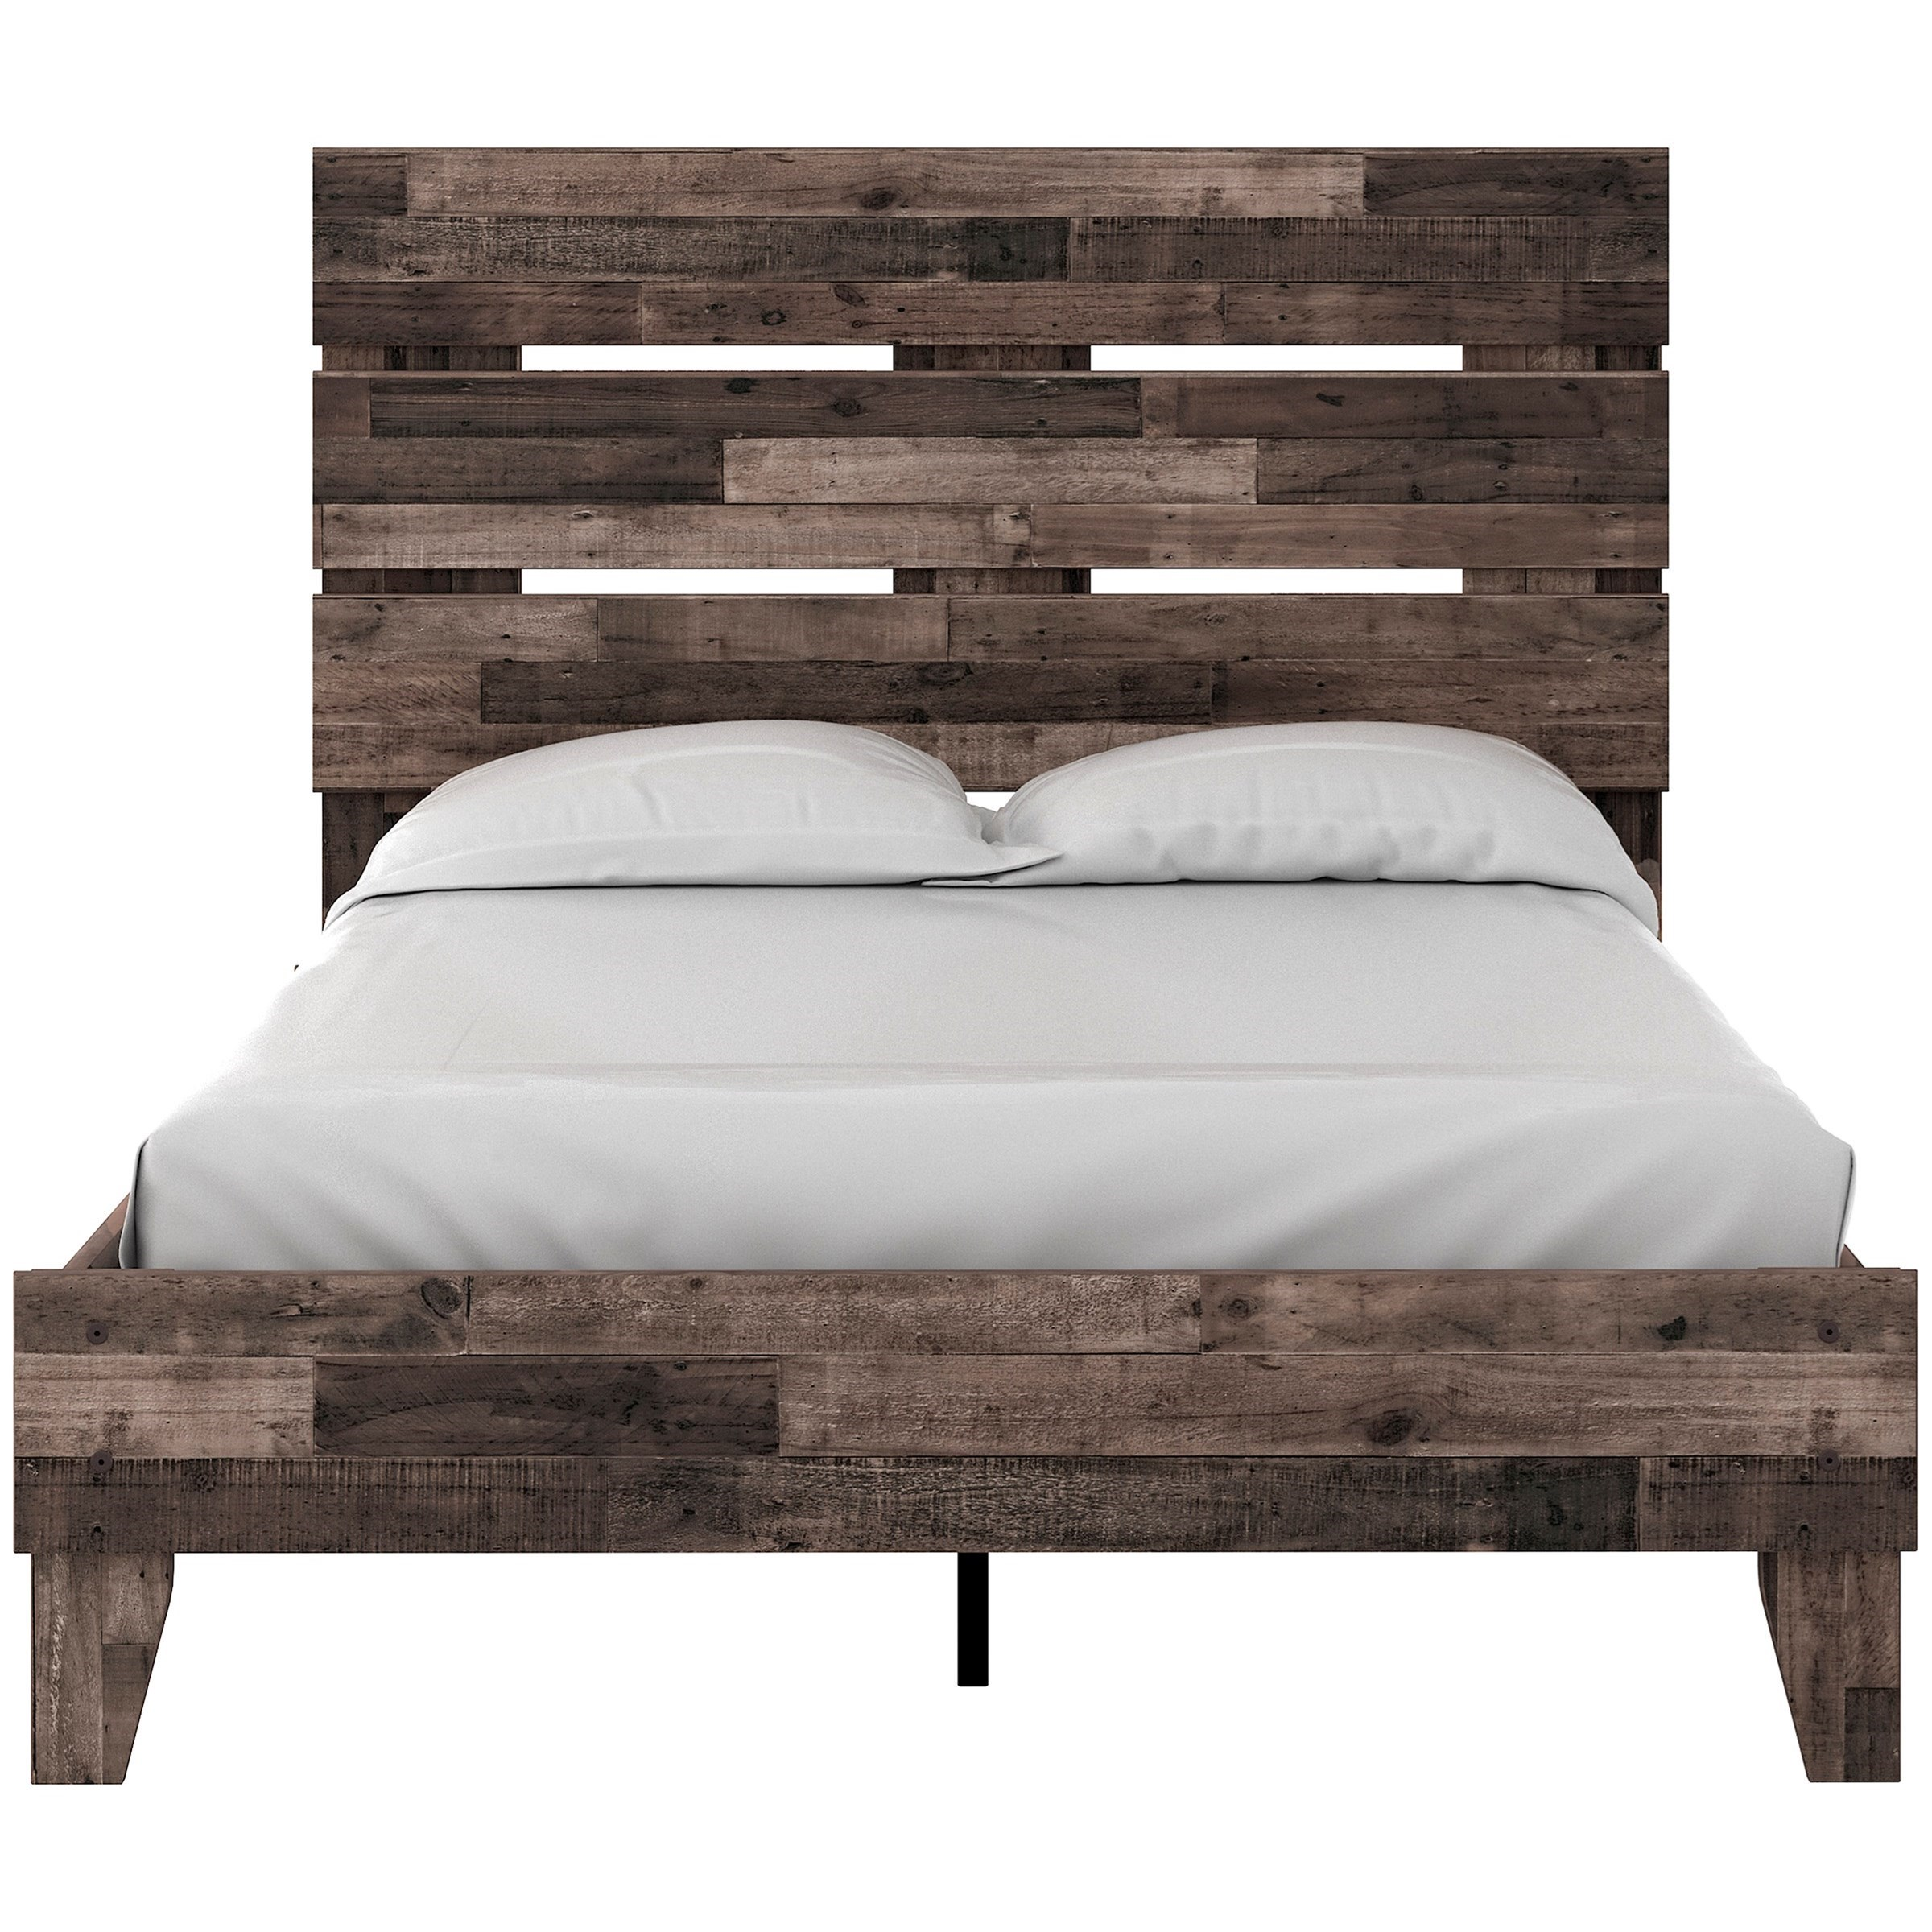 Neilsville Full Platform Bed with Headboard by Signature Design by Ashley at Northeast Factory Direct